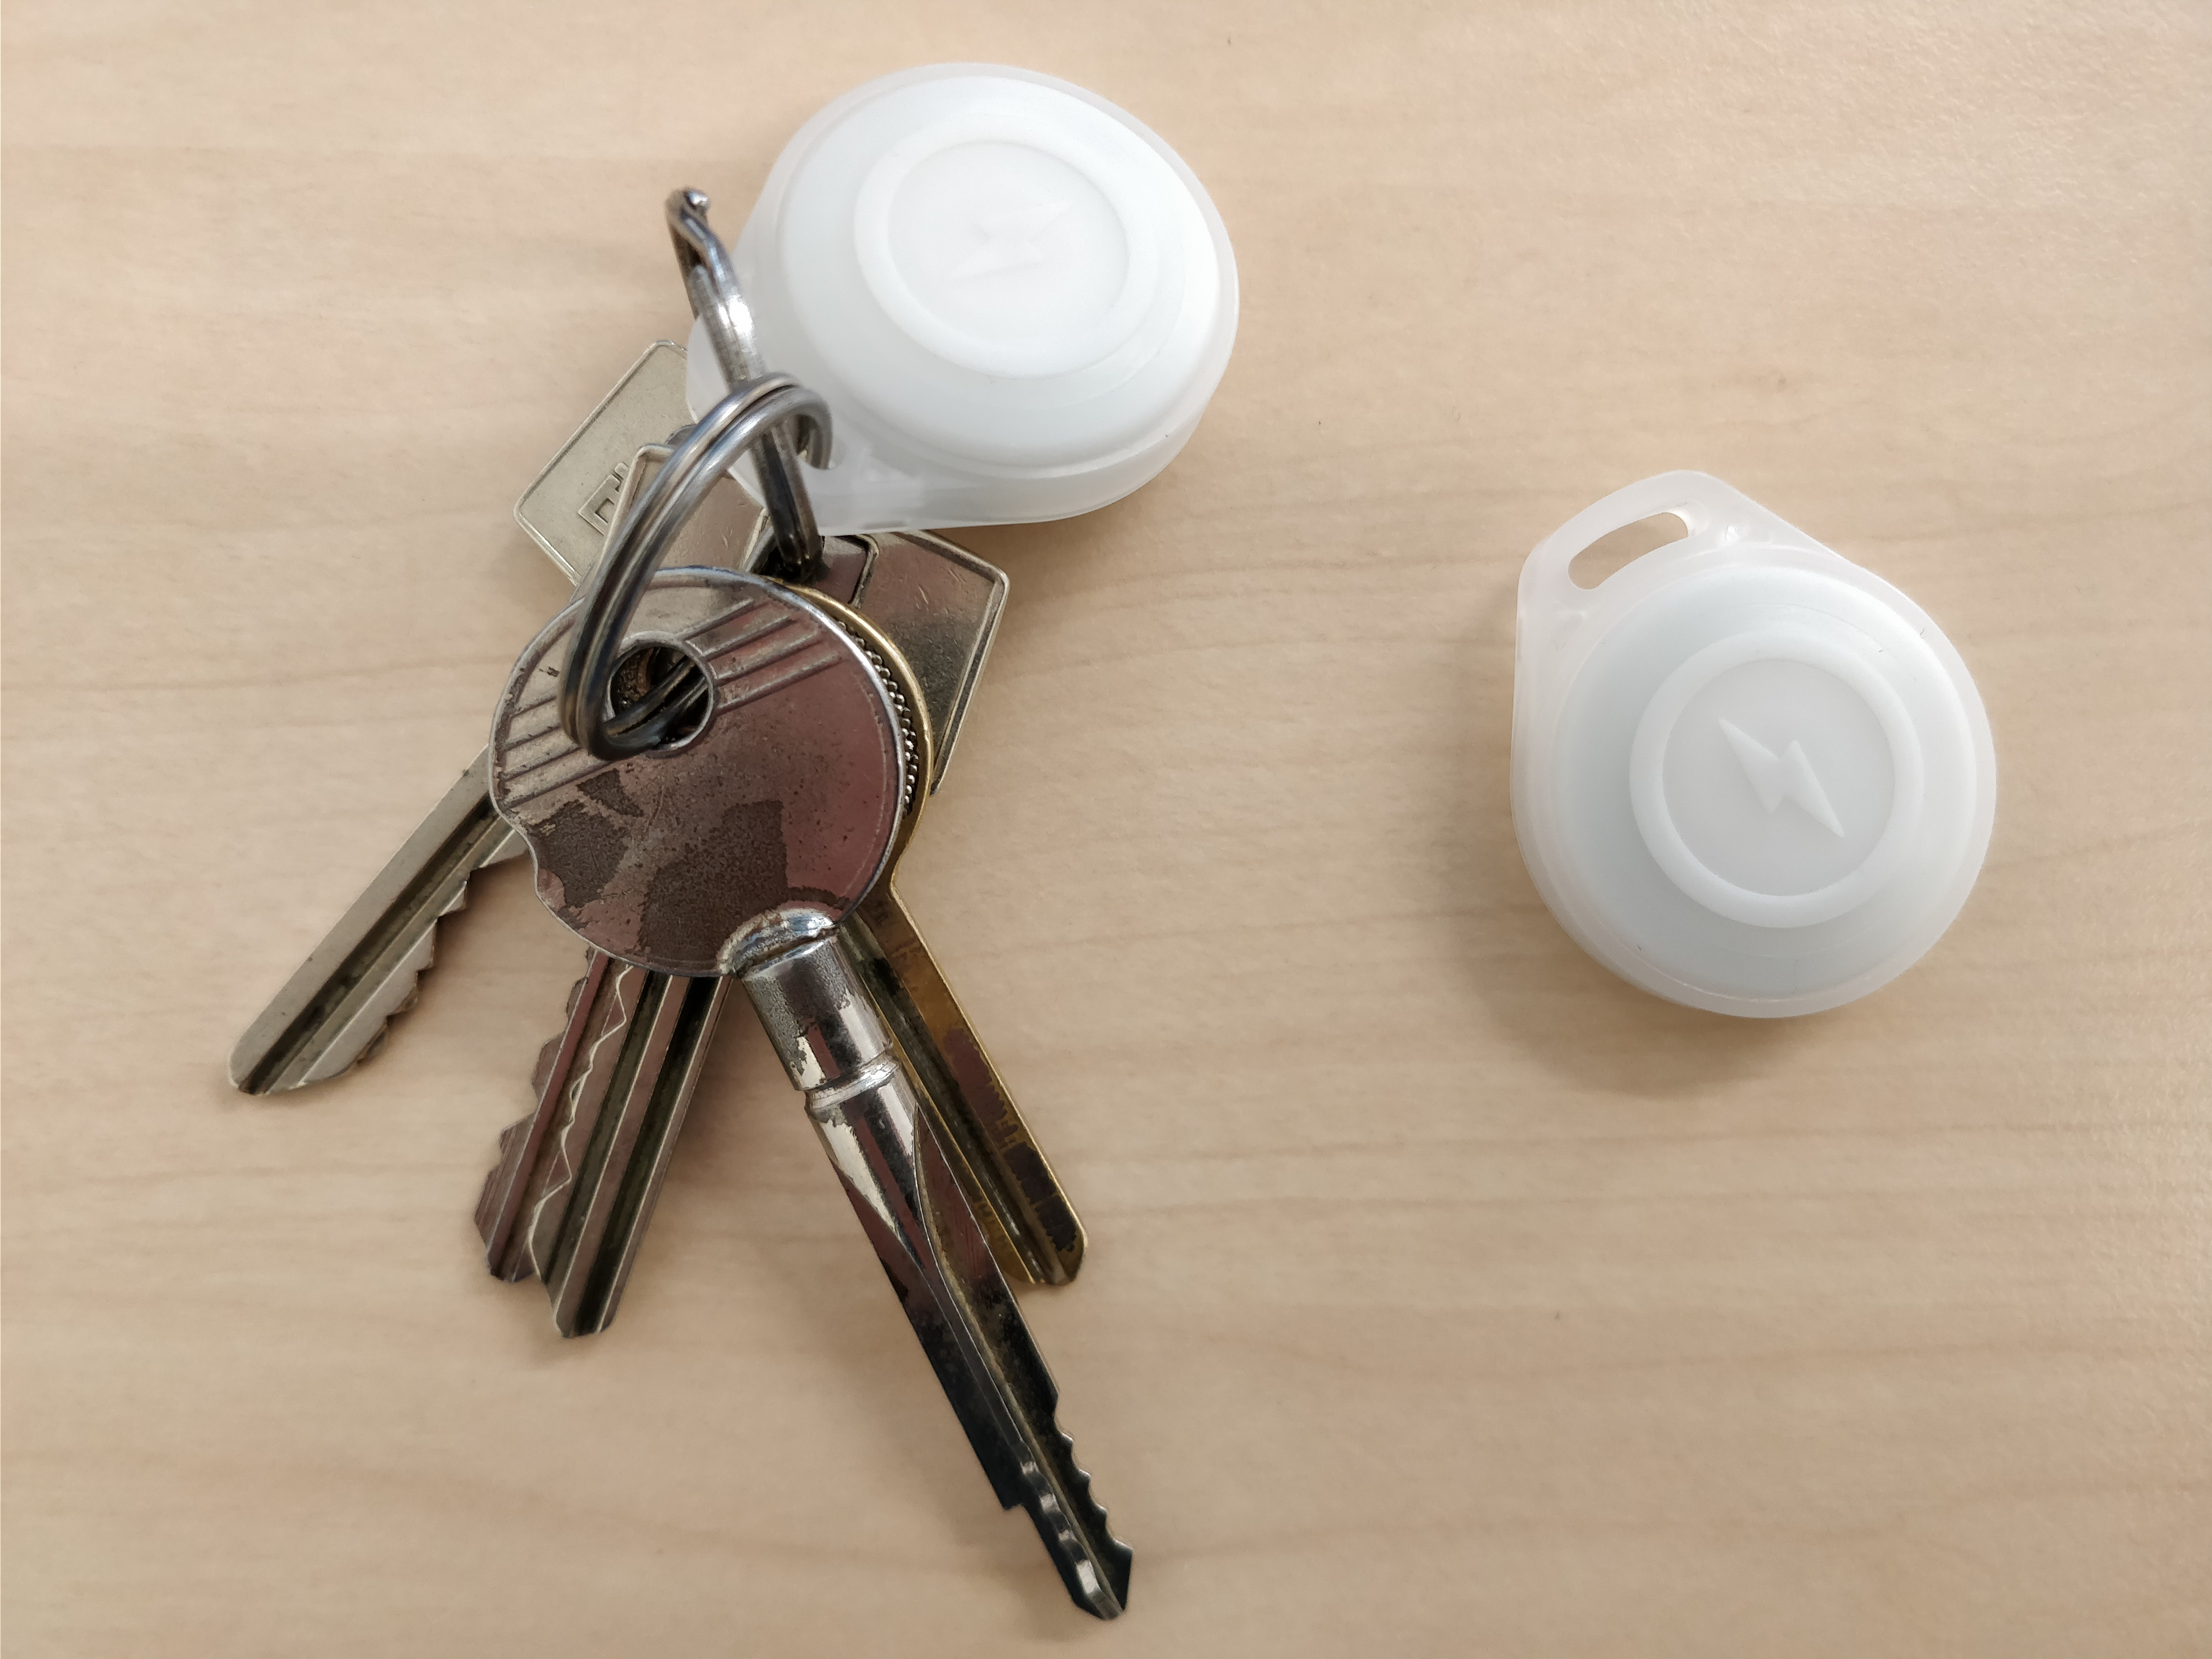 ProActivated Bluetooth Keychain Beacons